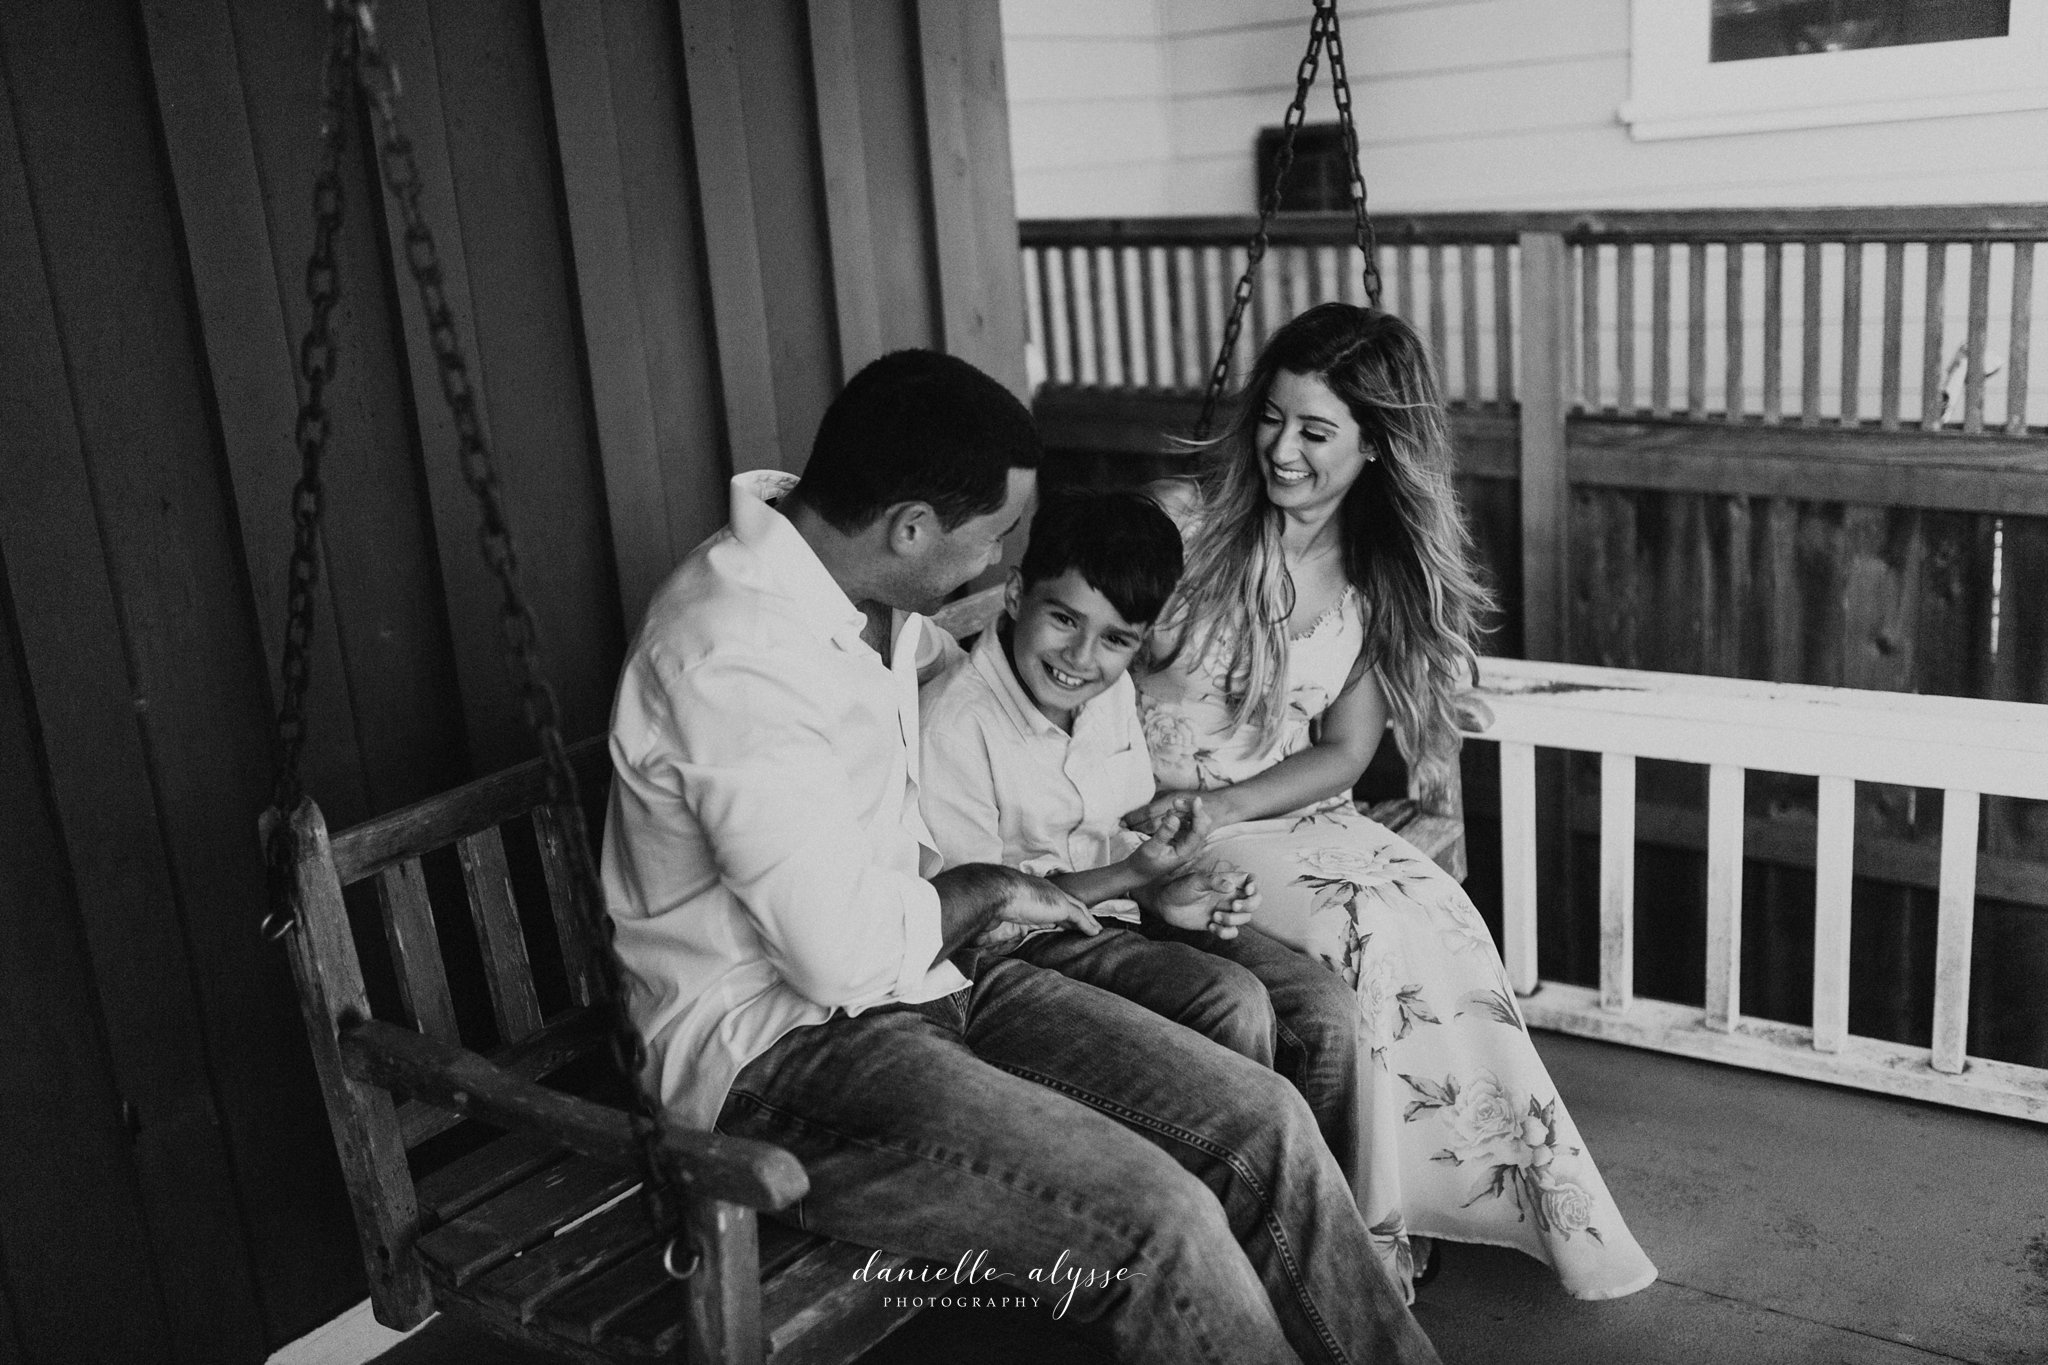 180804_engagement_katie_matt_dillon_beach_napa_danielle_alysse_photography_blog_88_WEB.jpg